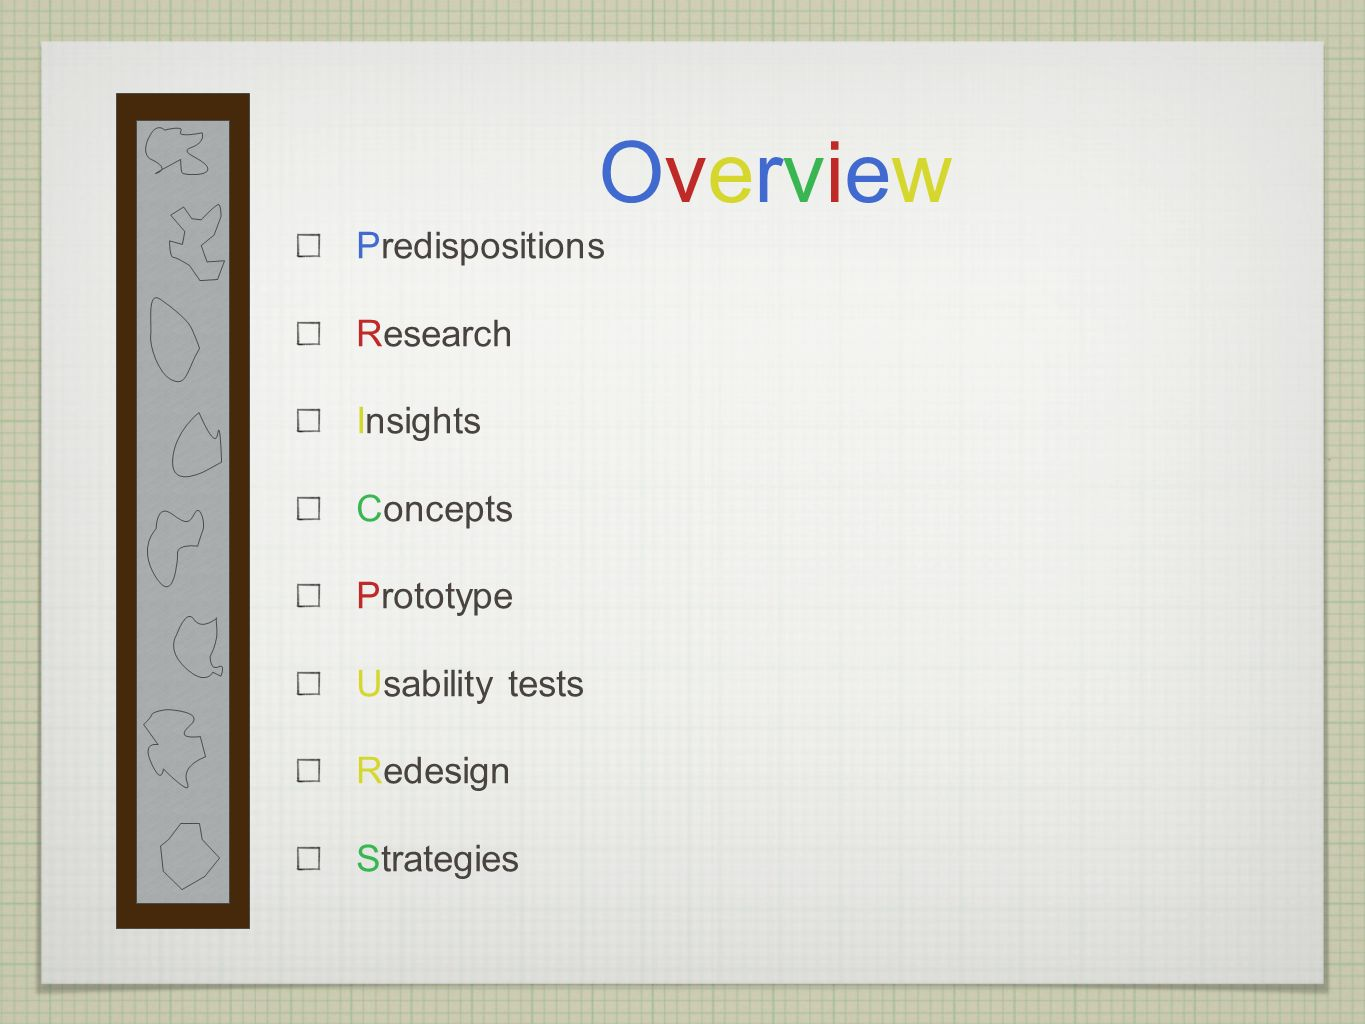 OverviewOverview Predispositions Research Insights Concepts Prototype Usability tests Redesign Strategies